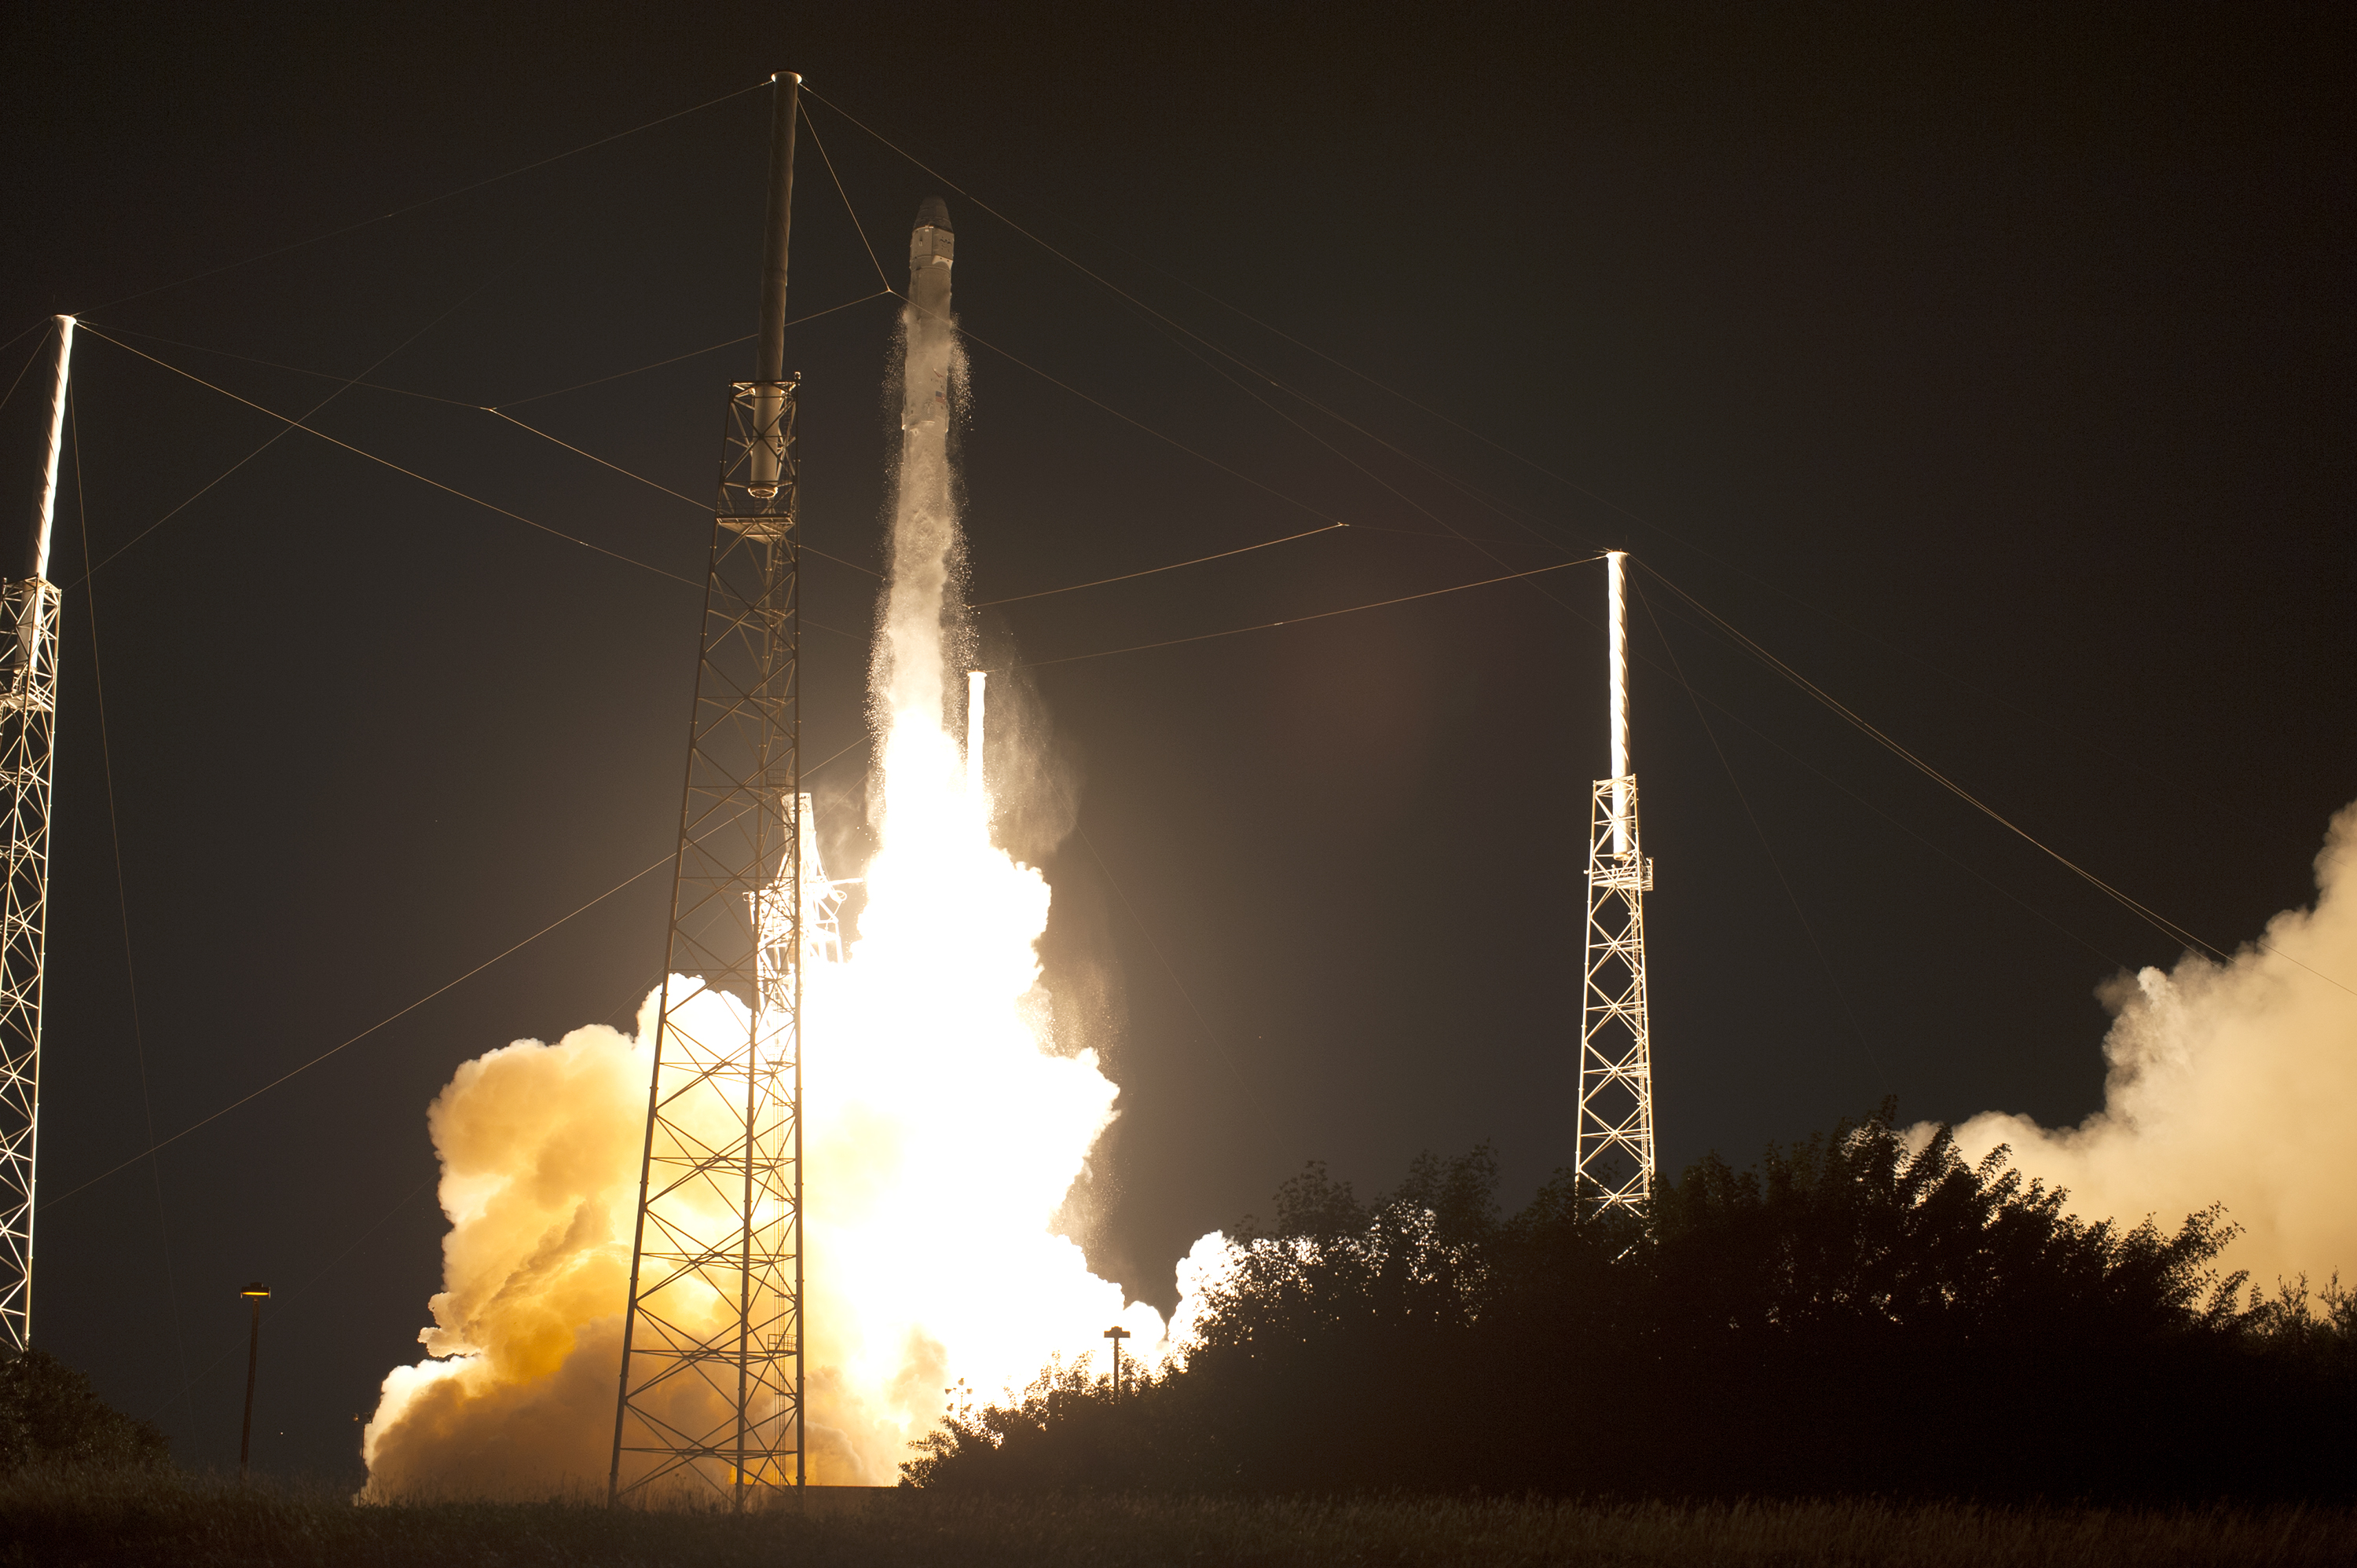 spacex launch feed - photo #13